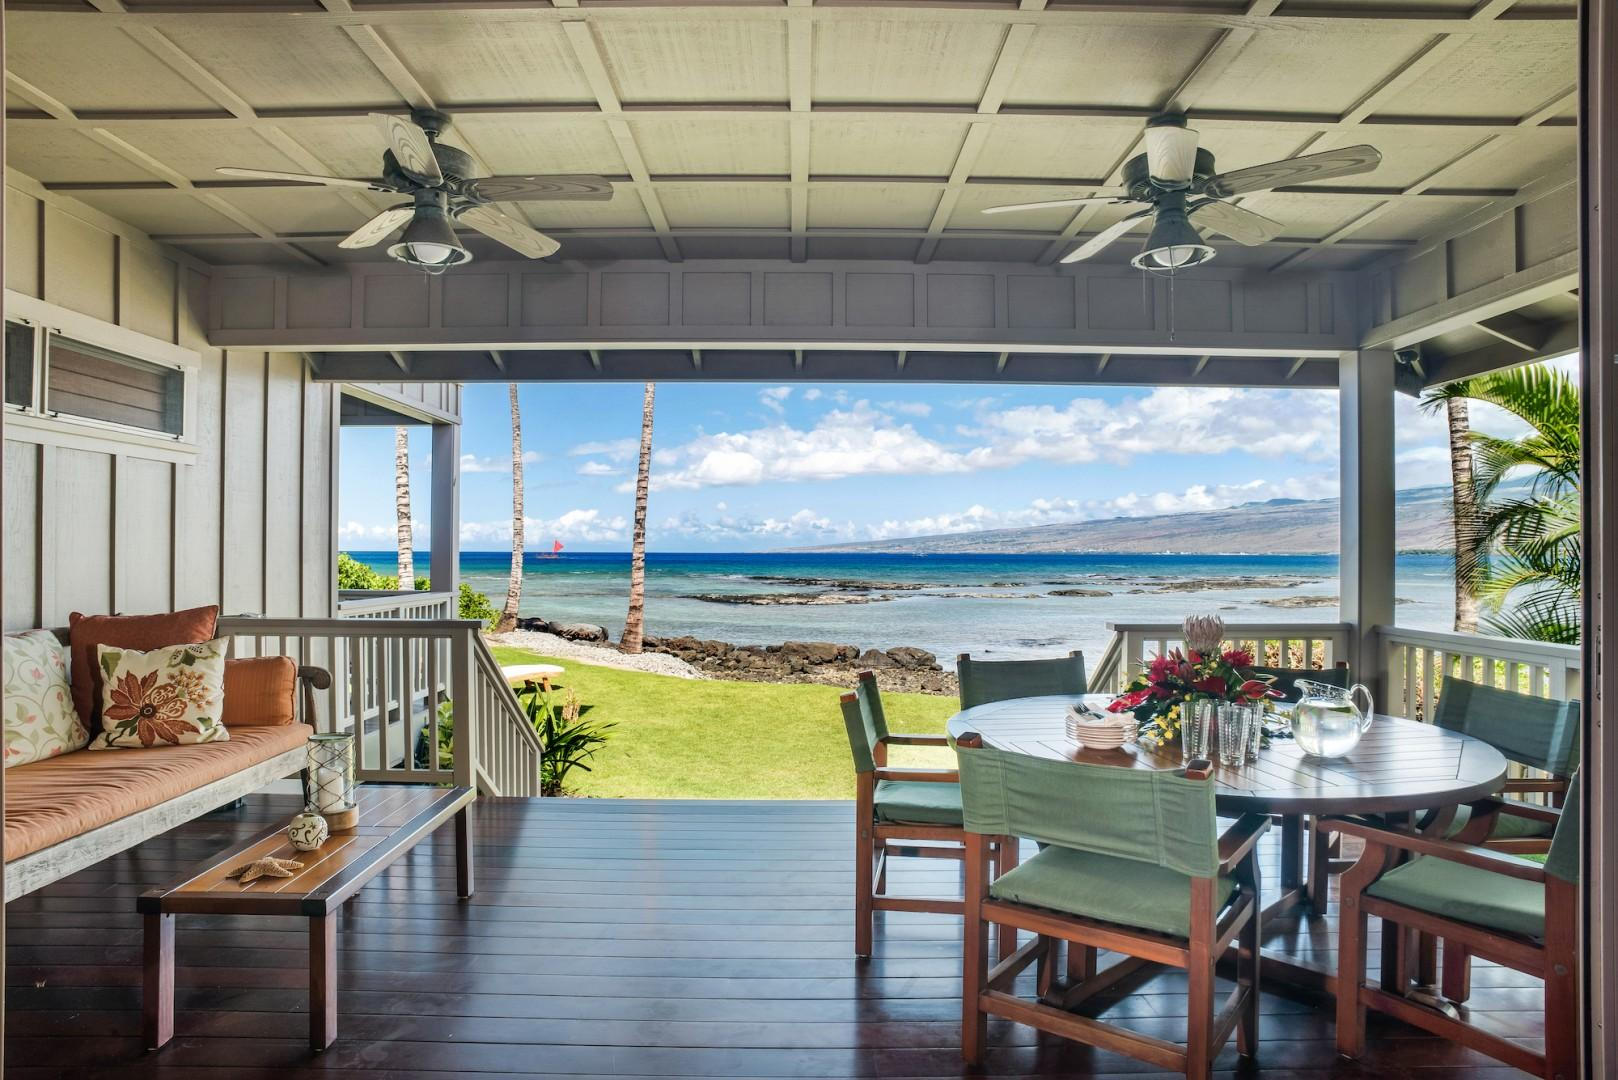 Main Lanai Off Living Room w/ Dining and Lounging Options, Just a Few Steps to the Shore!